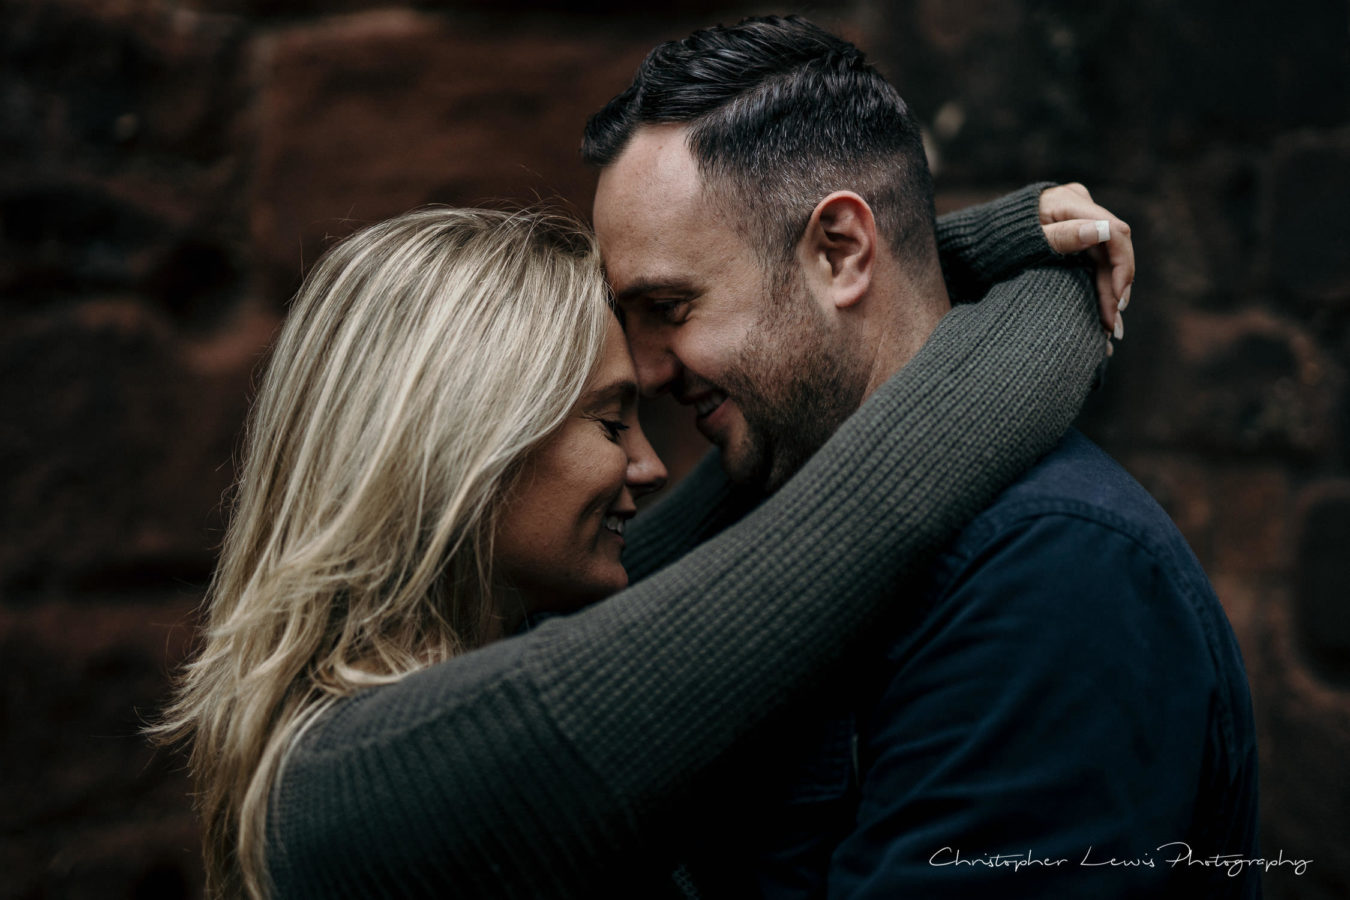 Chester-Pre-Wedding-Shoot-Christopher-Lewis-Photography-10